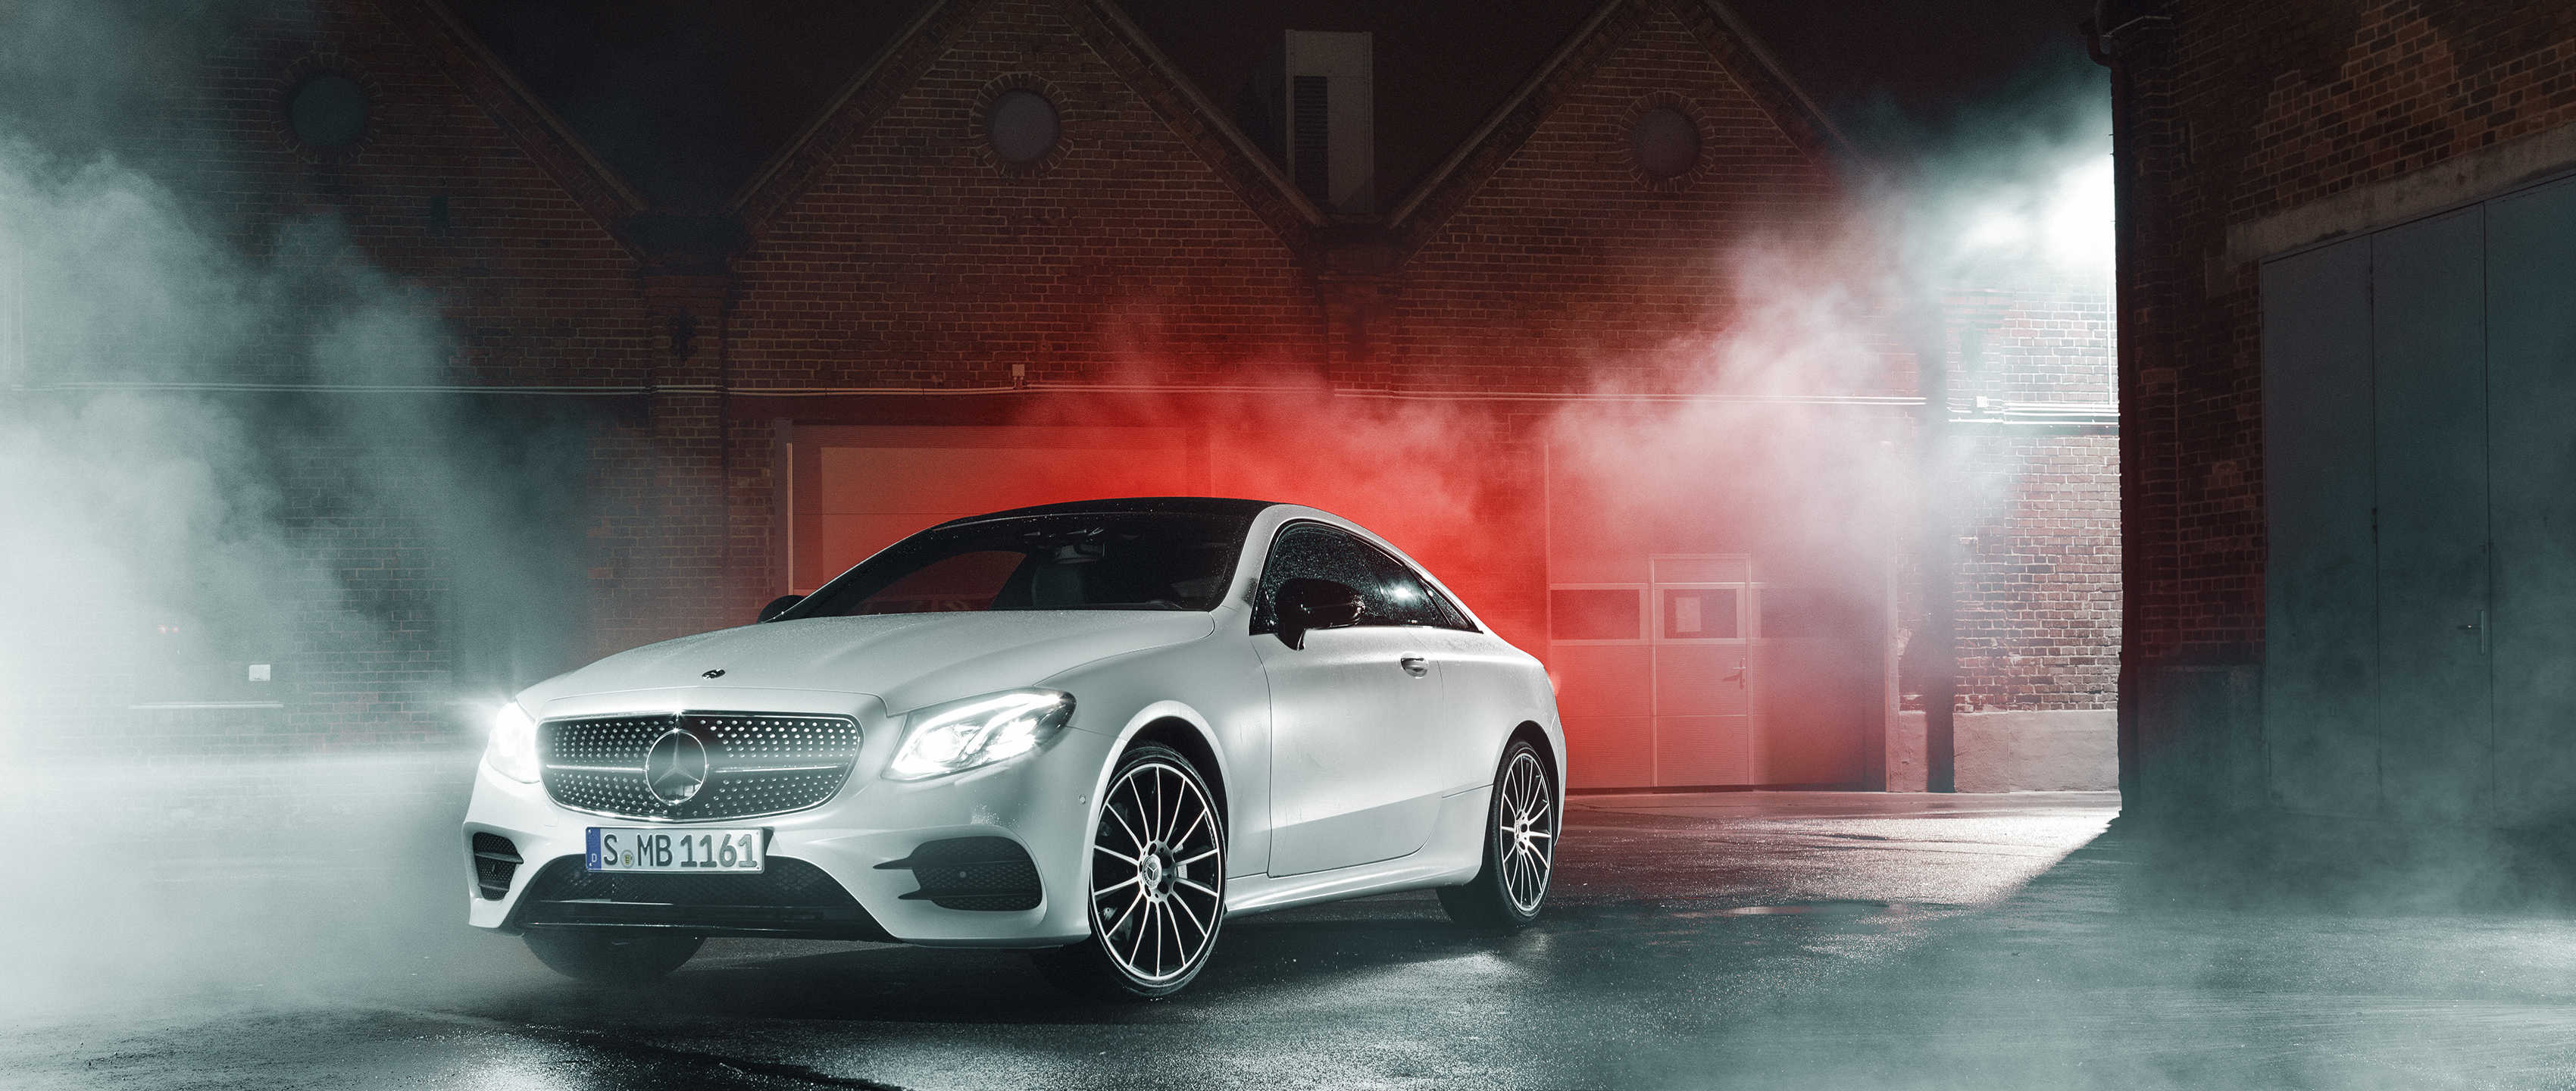 Mercedes Benz MBsocialcar image galleries wallpapers and videos 3400x1440